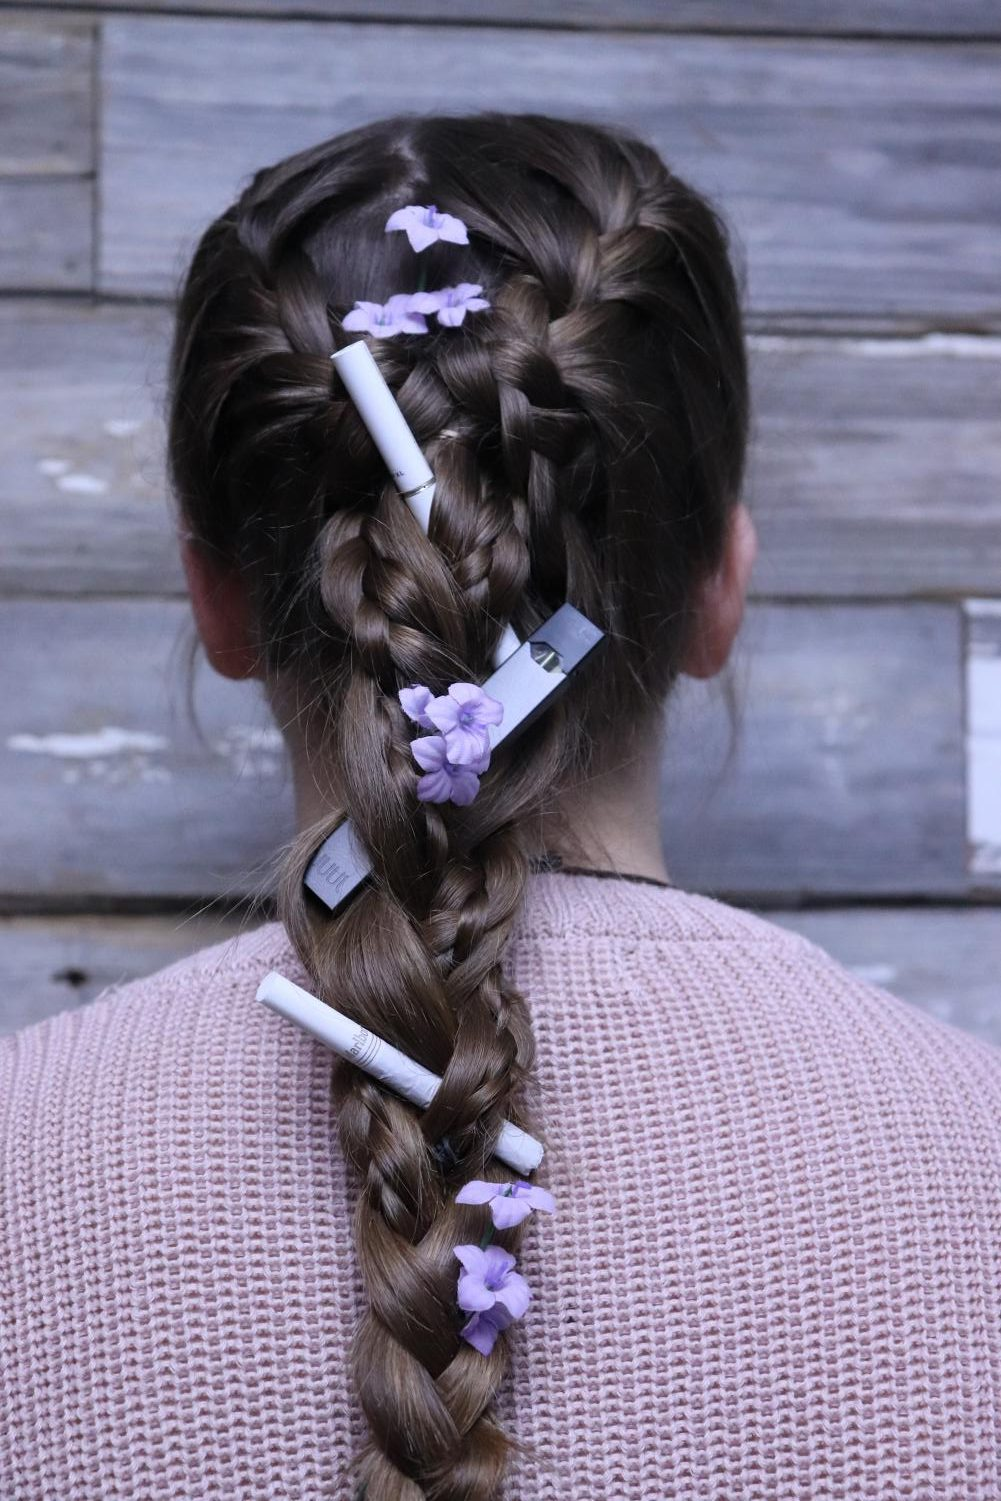 Freshman Ariana Nikolov is seen with cigarettes and a Juul tied in her hair to represent the addiction one can be tangled in.